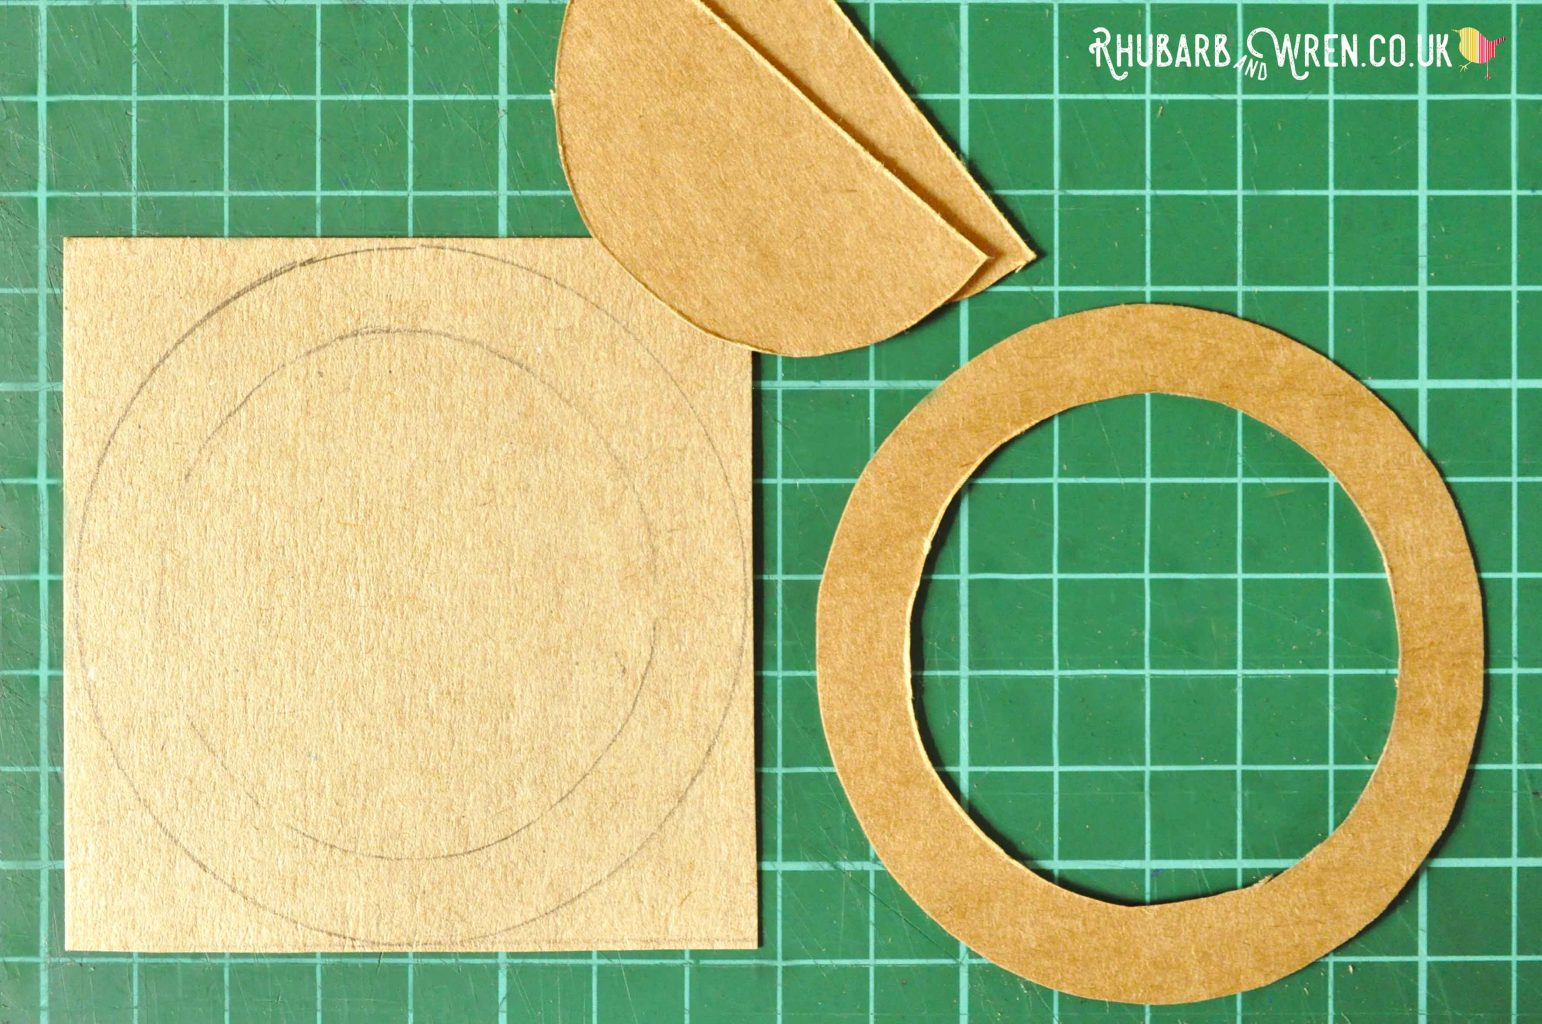 Cardboard for a diy real magnifying glass